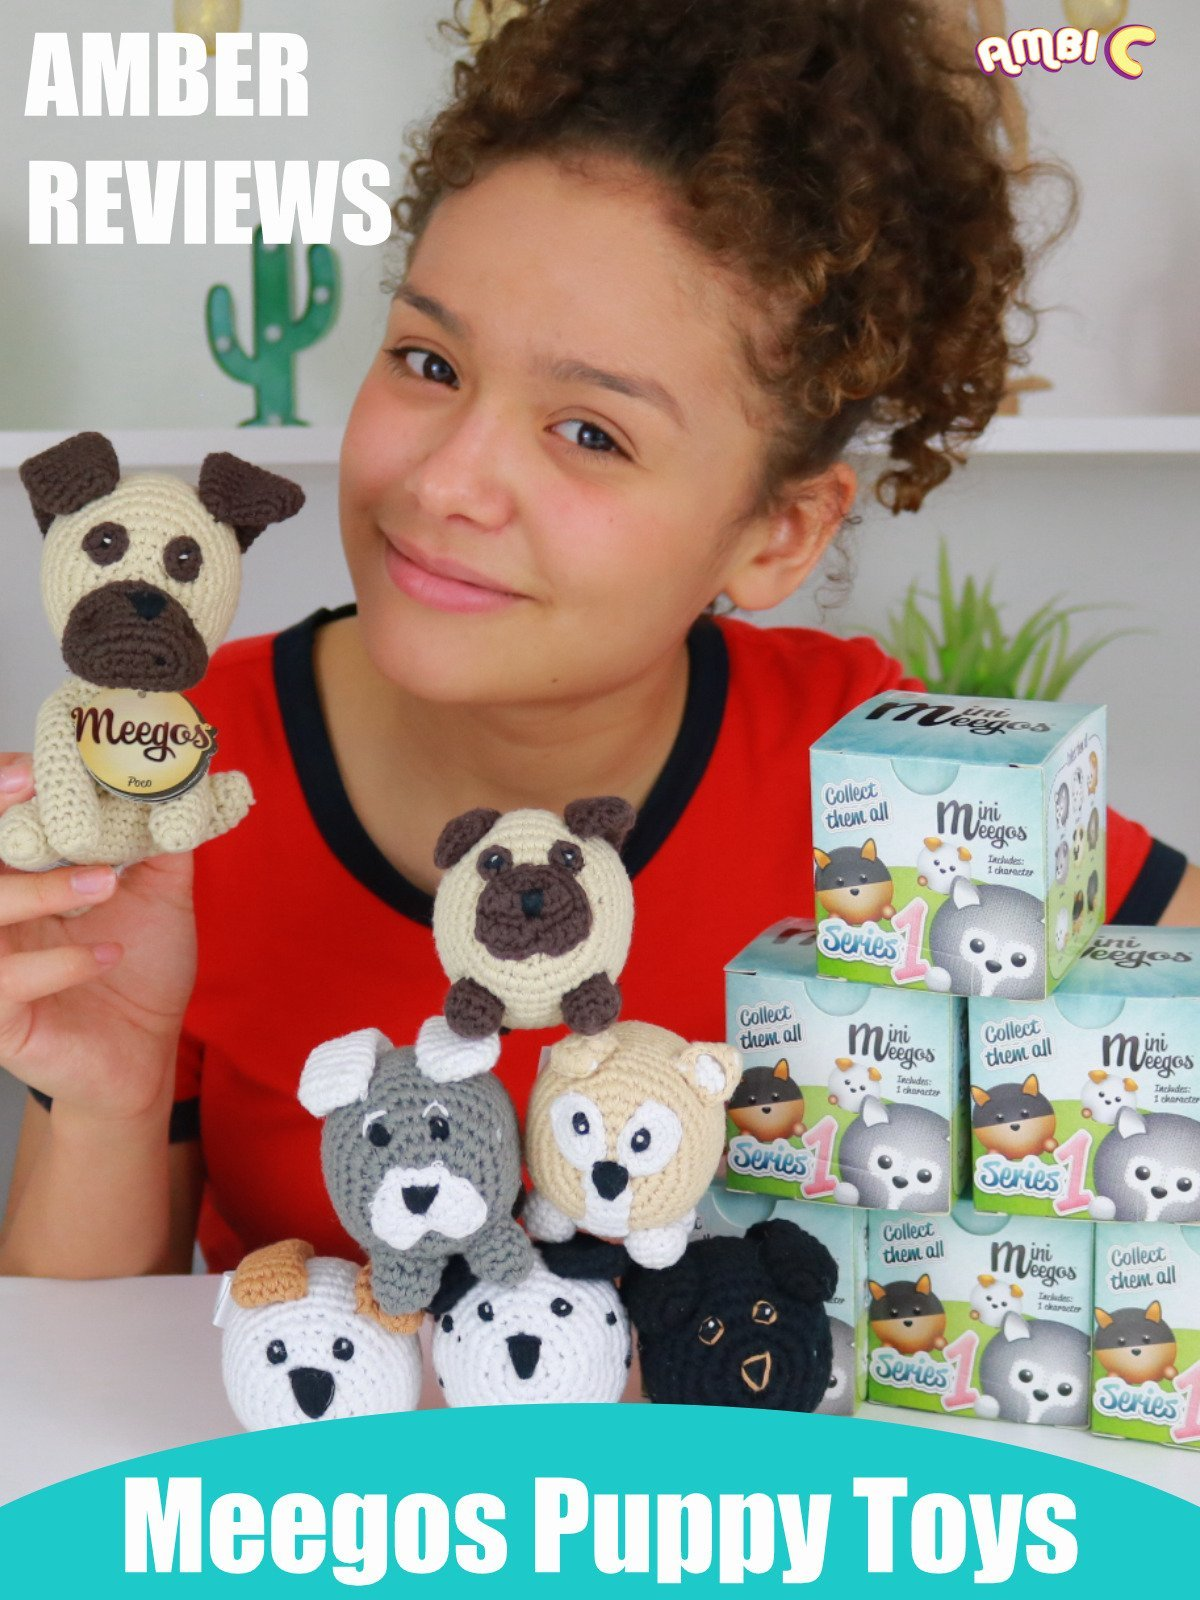 Amber Reviews Meegos Puppy Toys